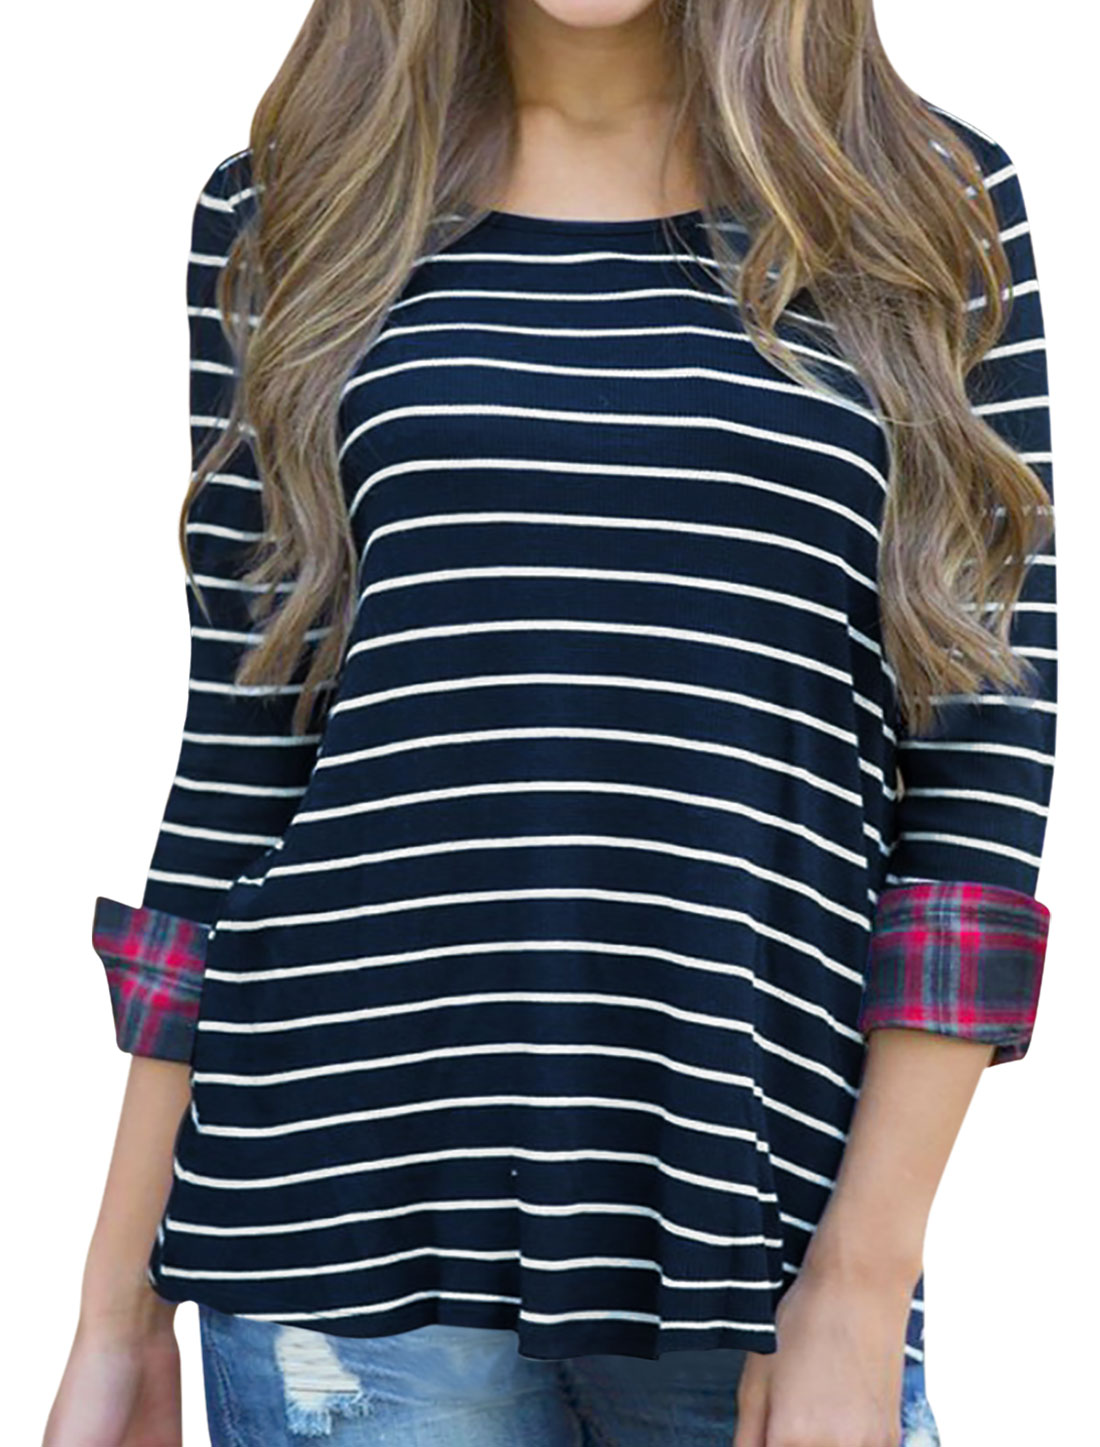 Women Plaids Cuffs Scoop Neck 3/4 Sleeves Striped Tunic Top Blue S